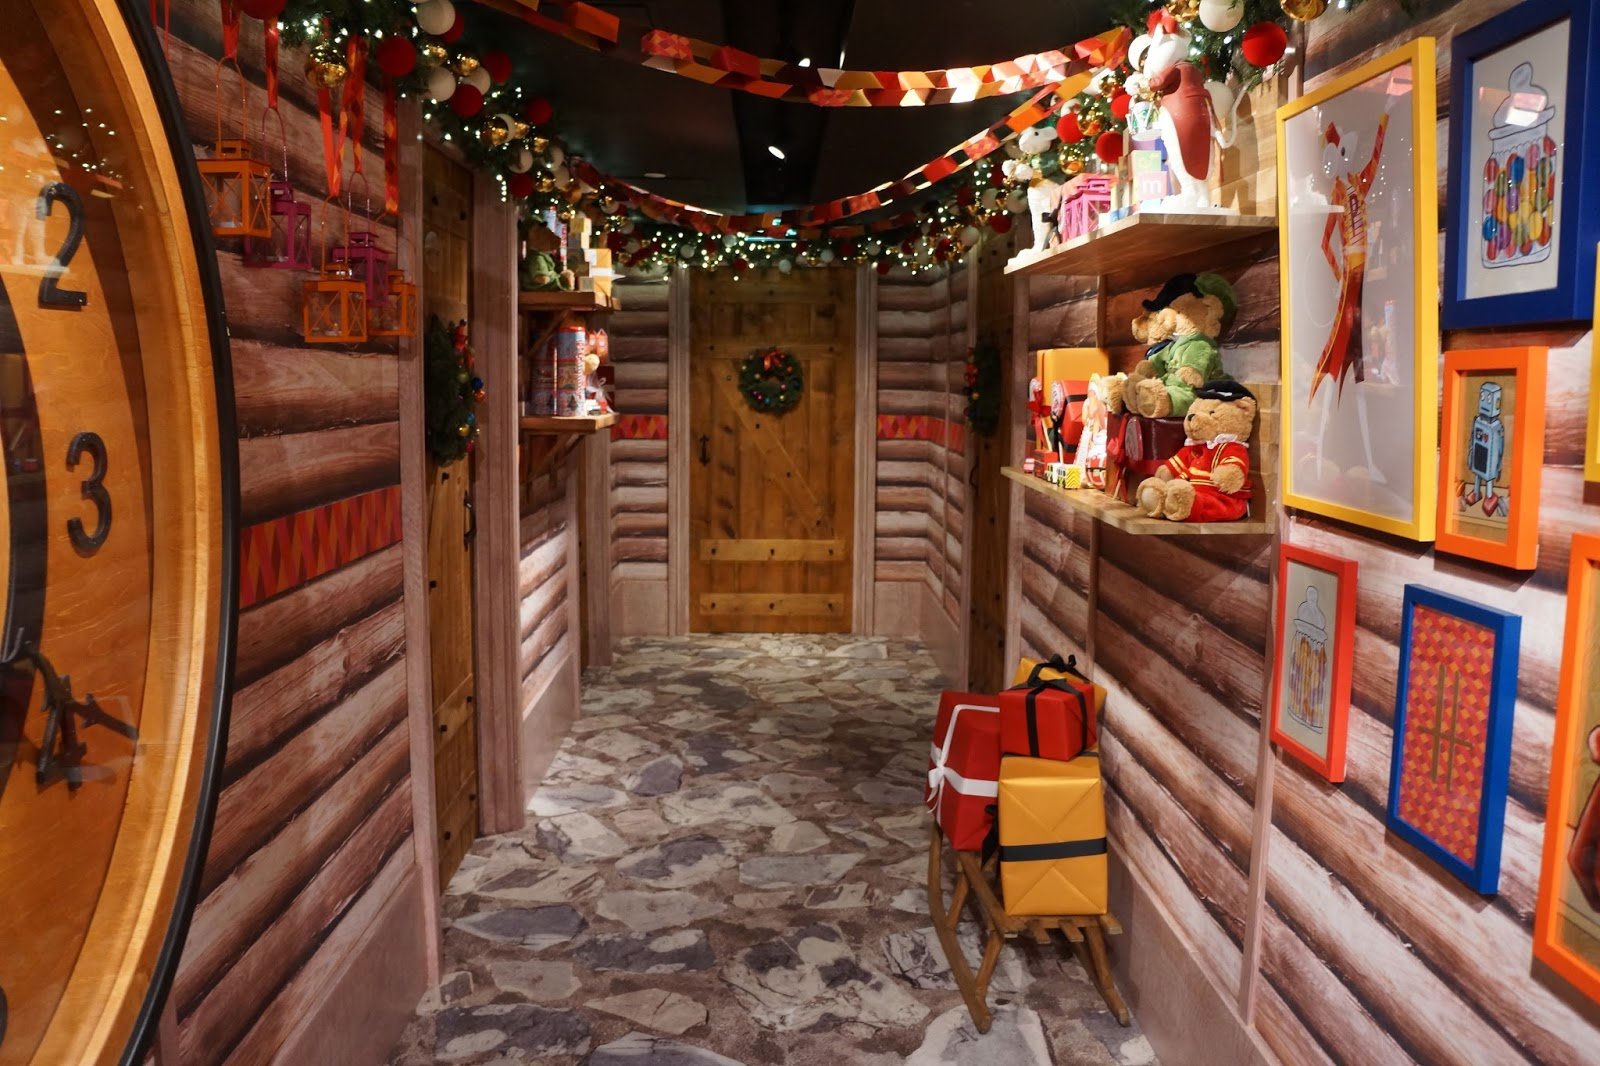 harrods christmas grotto 2015 waiting area for santa